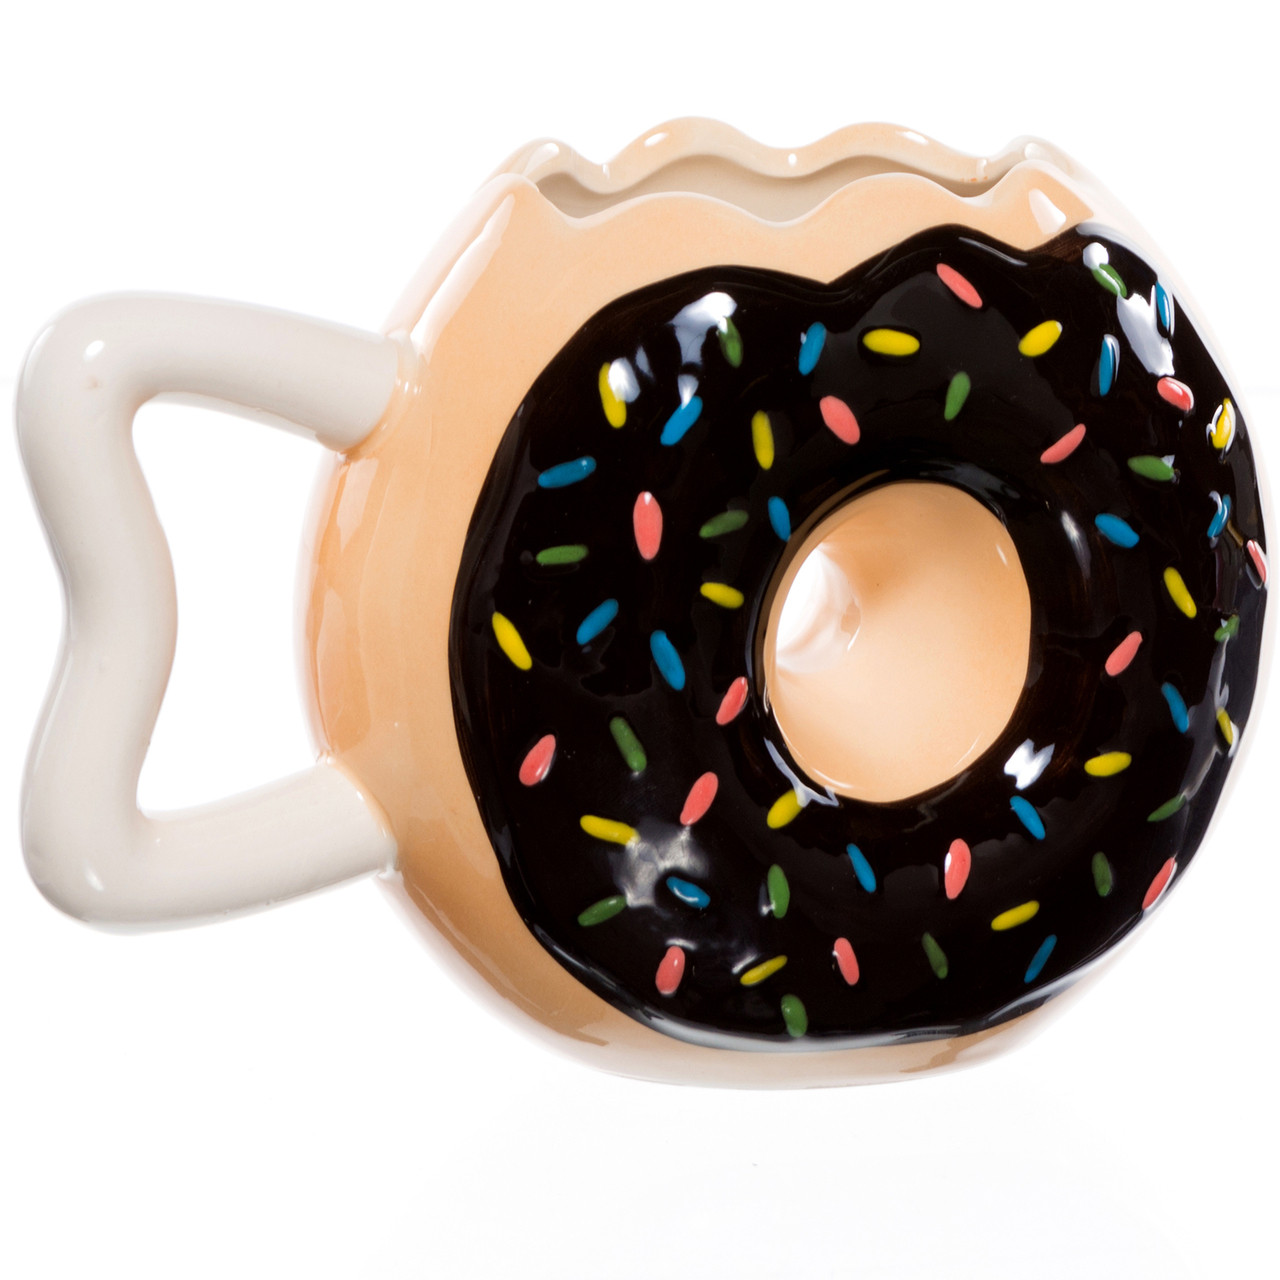 a8838061d78 Frosted Donut Shaped Coffee Mug